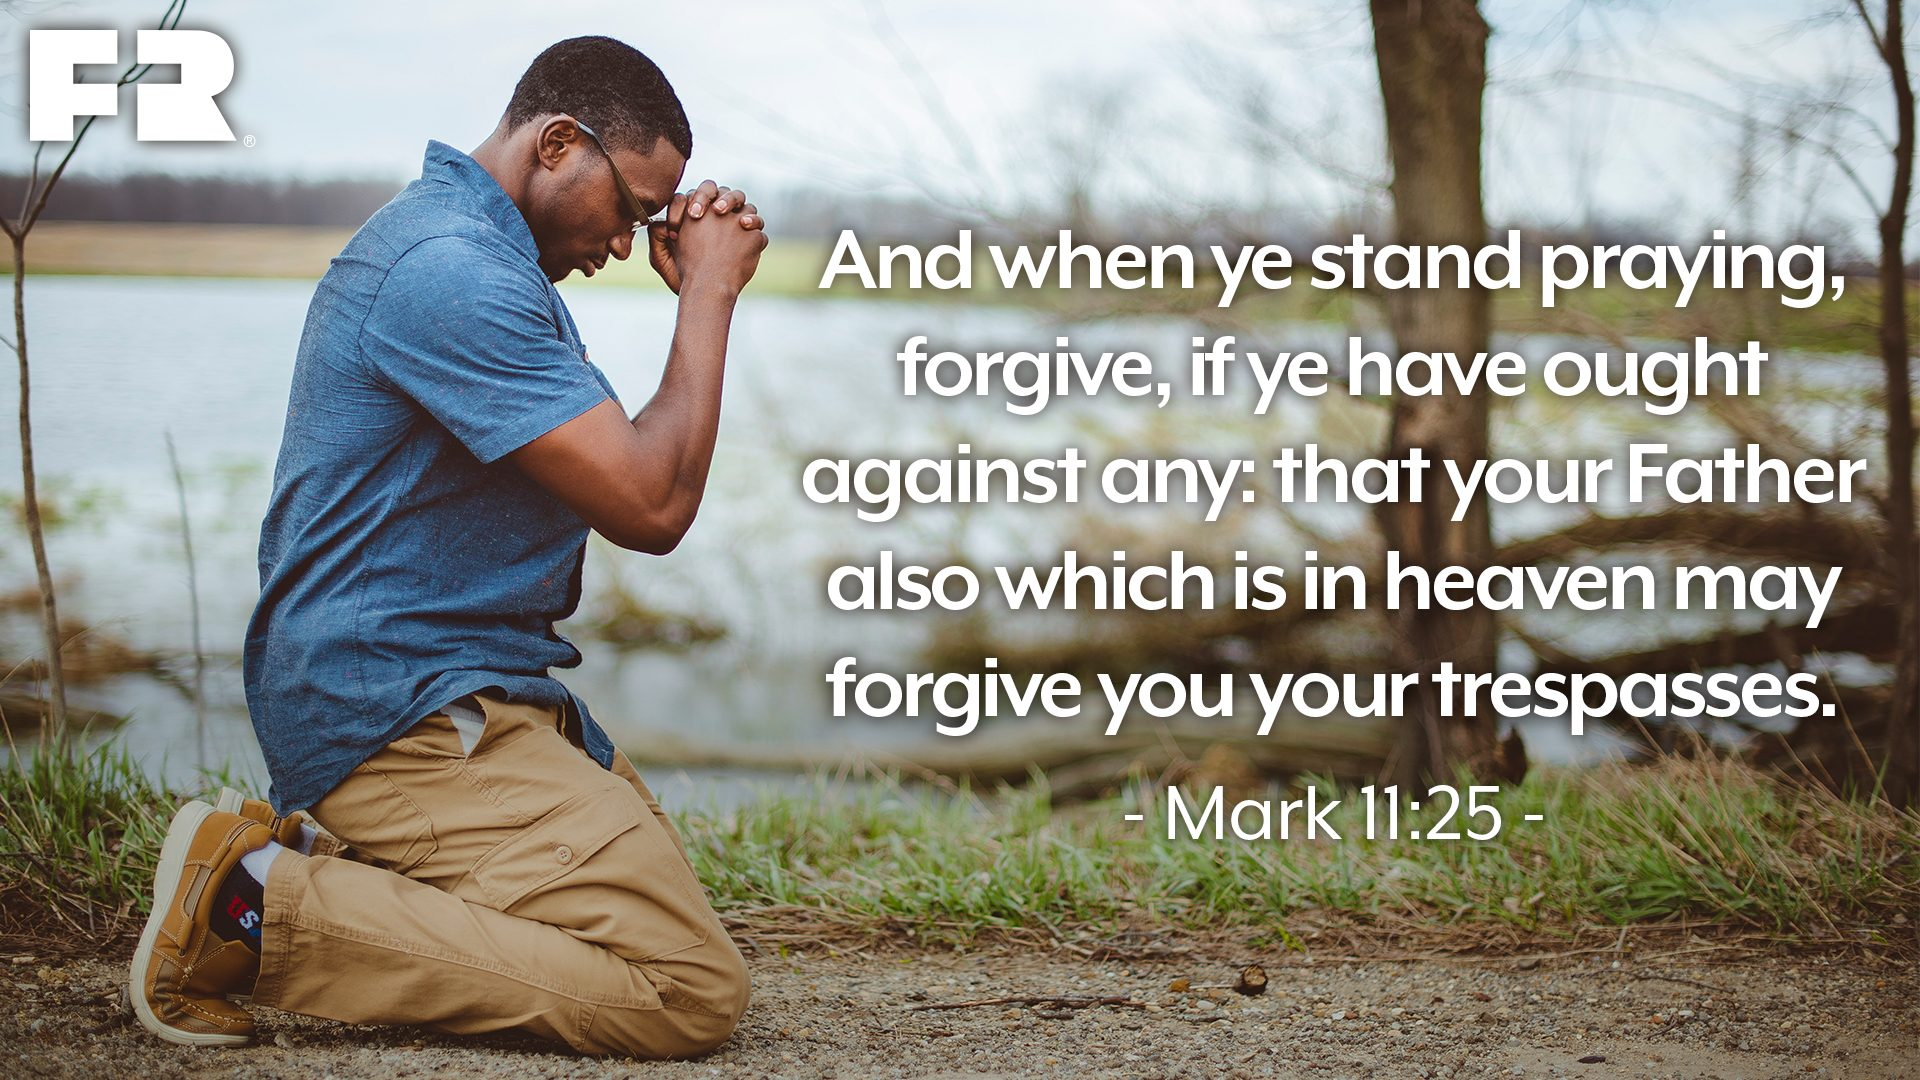 """And when ye stand praying, forgive, if ye have ought against any: that your Father also which is in heaven may forgive you your trespasses."""